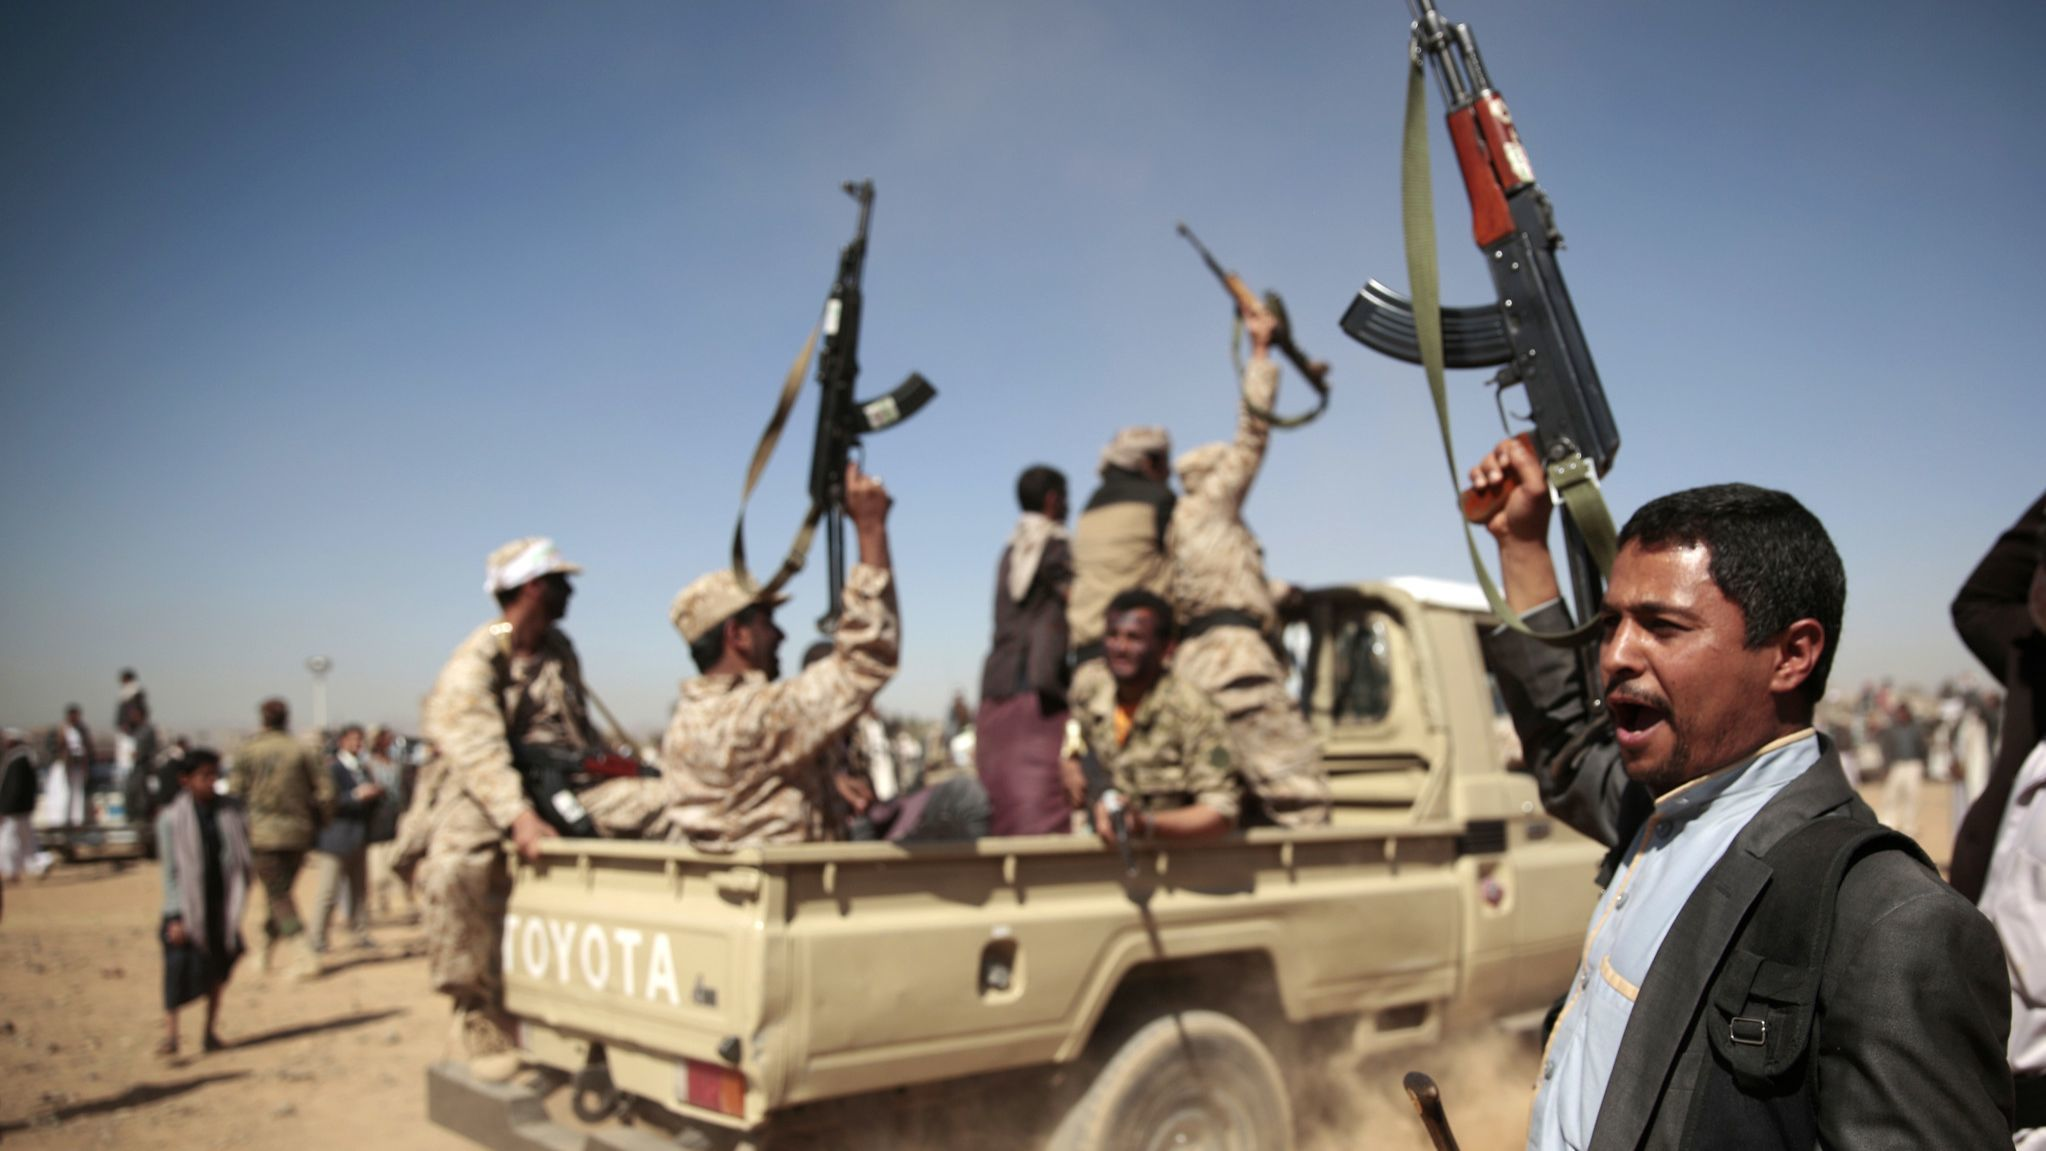 Yemeni forces advance on key port city